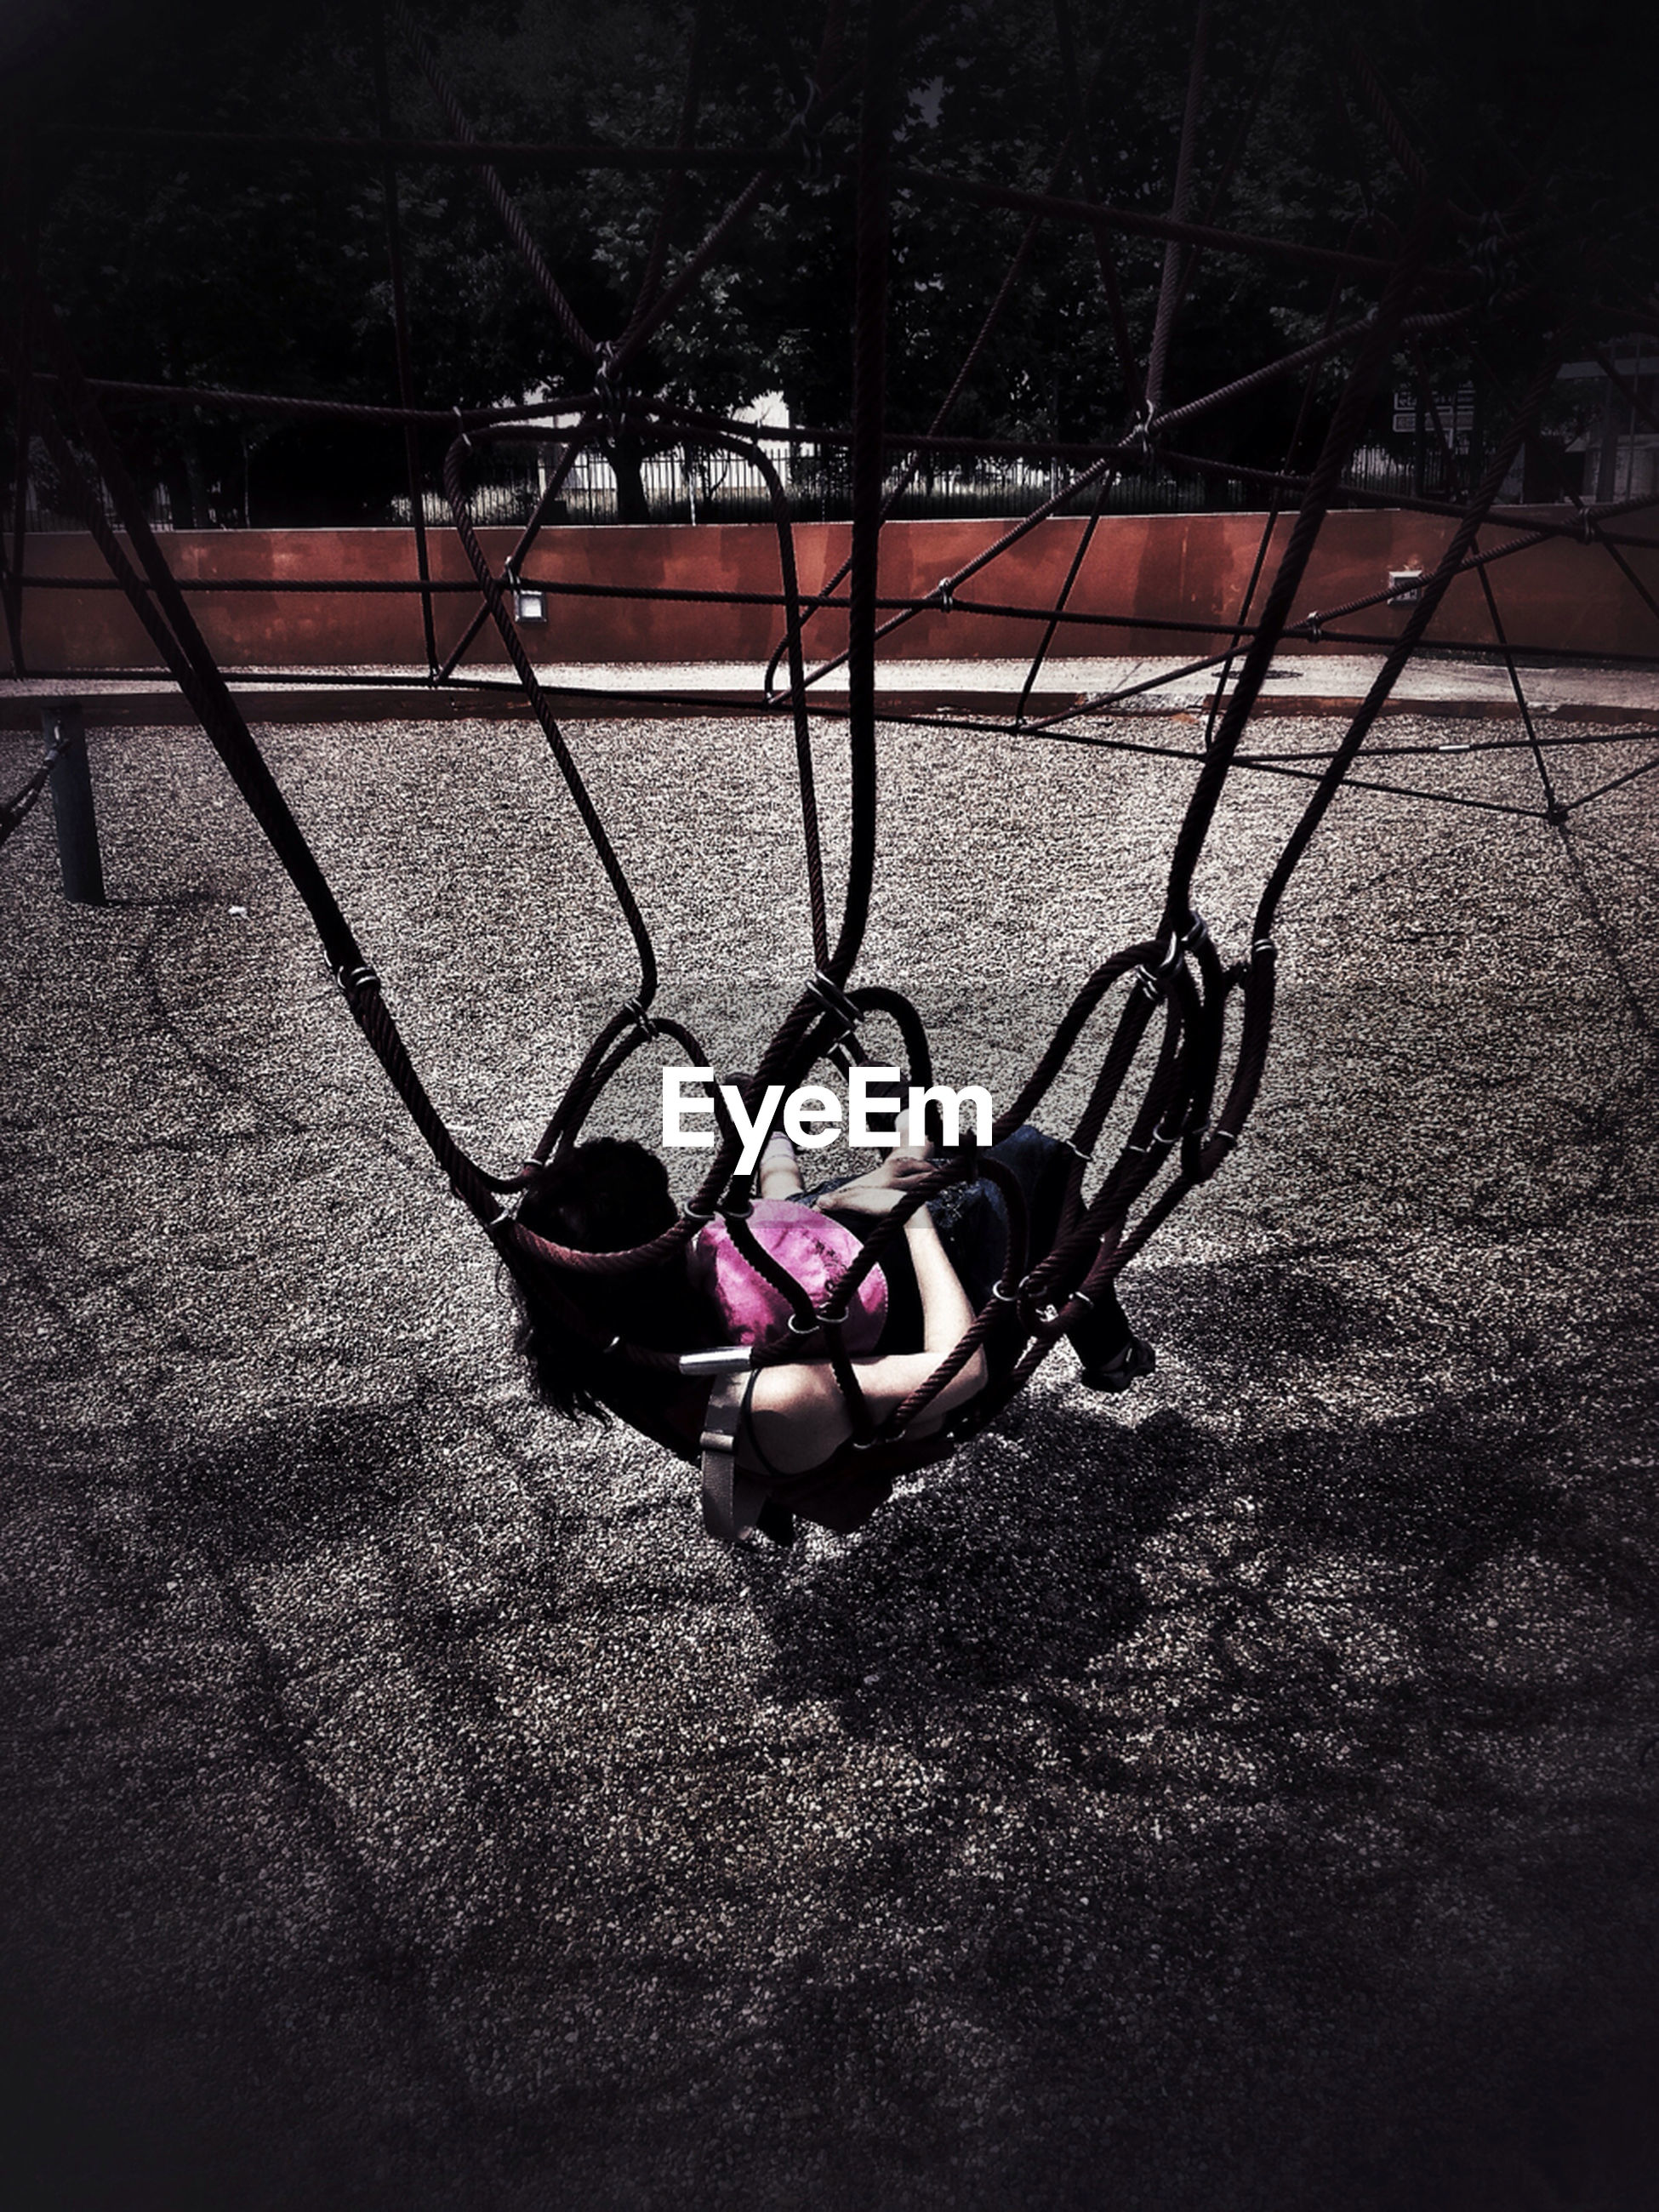 childhood, playground, shadow, high angle view, toy, bicycle, absence, outdoors, sport, bare tree, street, still life, no people, day, transportation, multi colored, hanging, swing, sunlight, grass